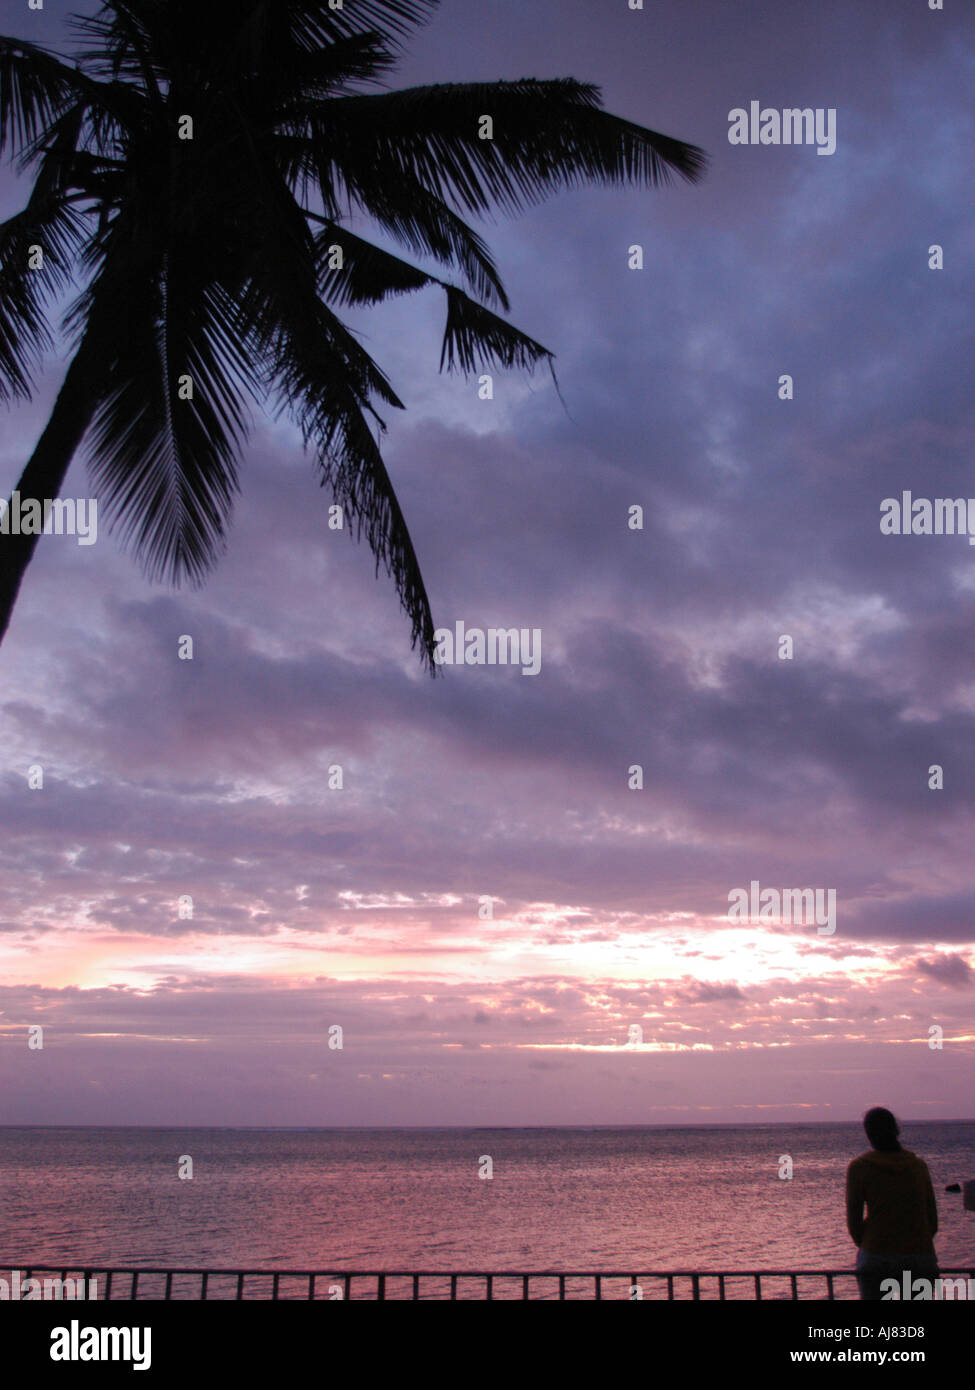 tropical sunset, Mauritius, Indian Ocean - Stock Image